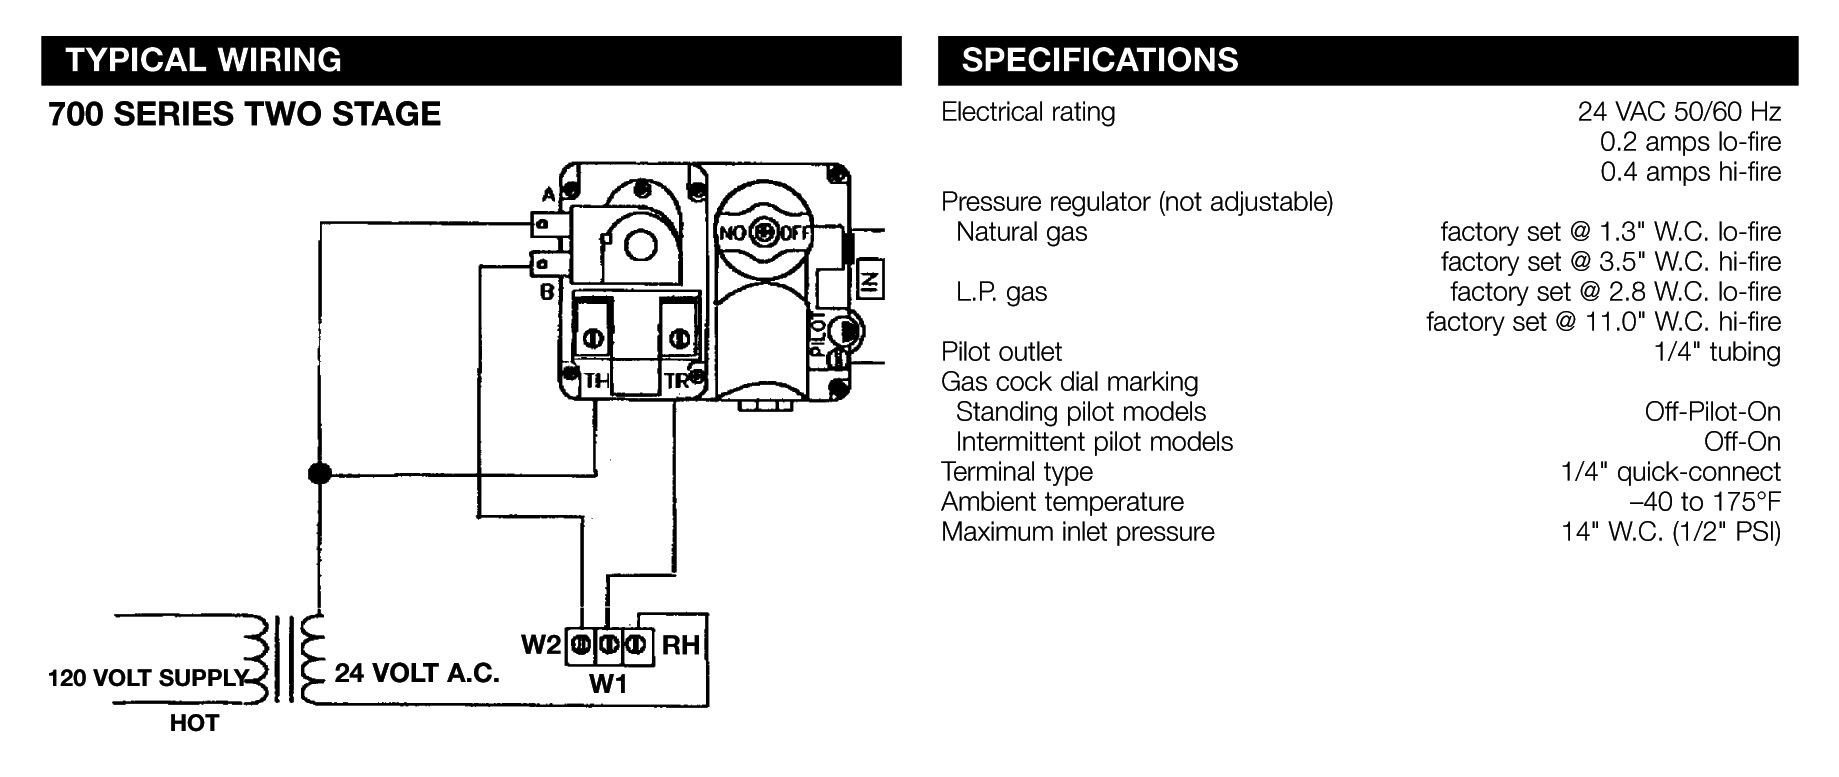 787cc71d fa10 4f03 824b c5b9bcc9b3d8 robertshaw products 700 051 robertshaw gas valve wiring diagram at panicattacktreatment.co